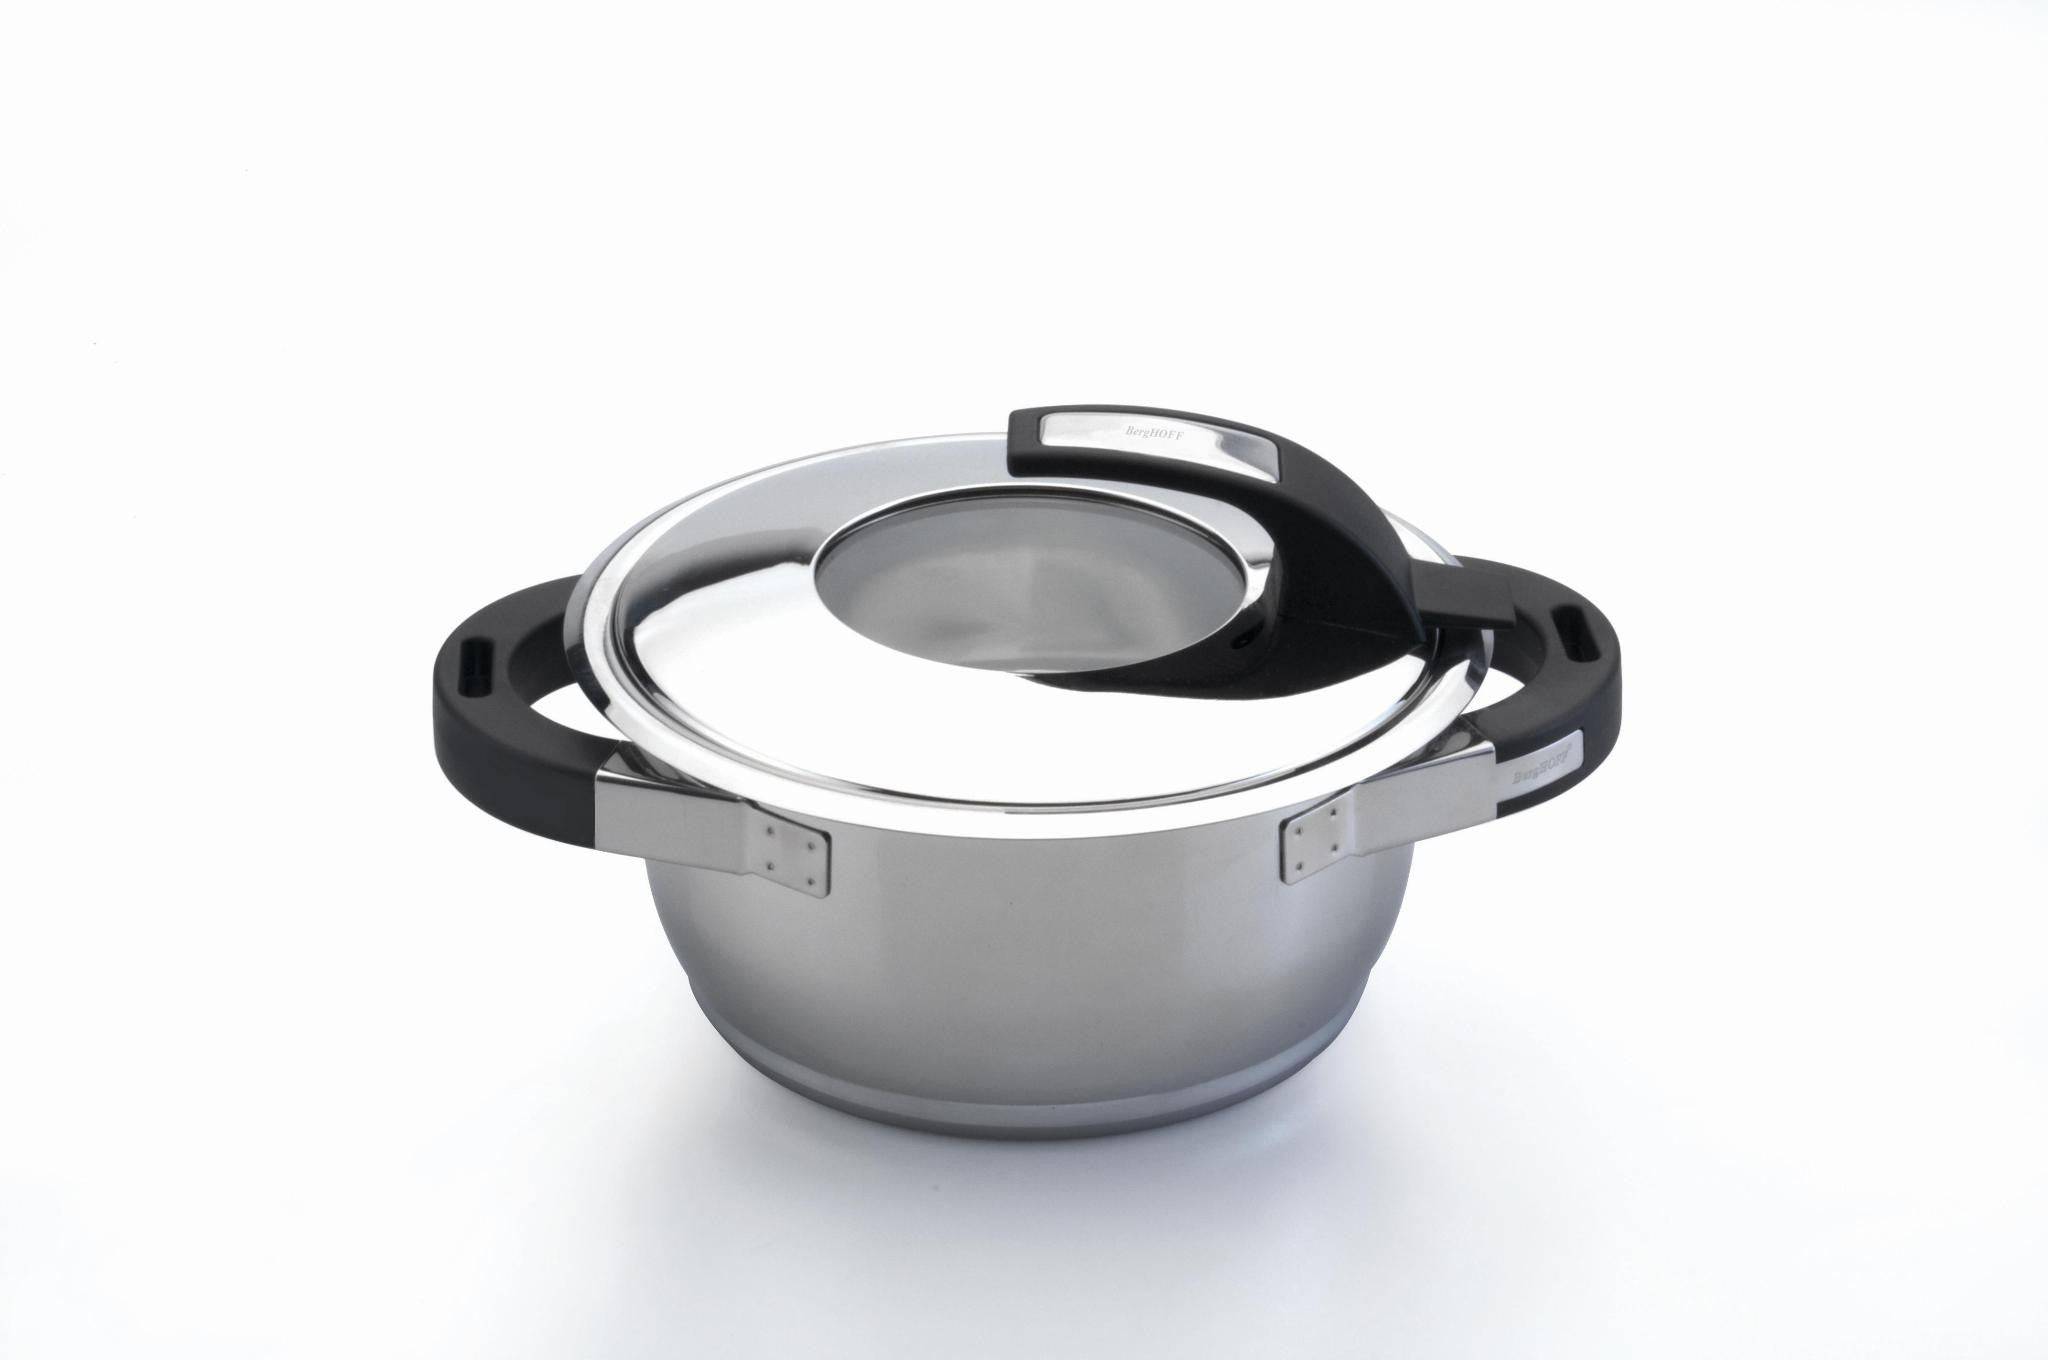 Virgo Stainless Steel 16cm Covered Casserole